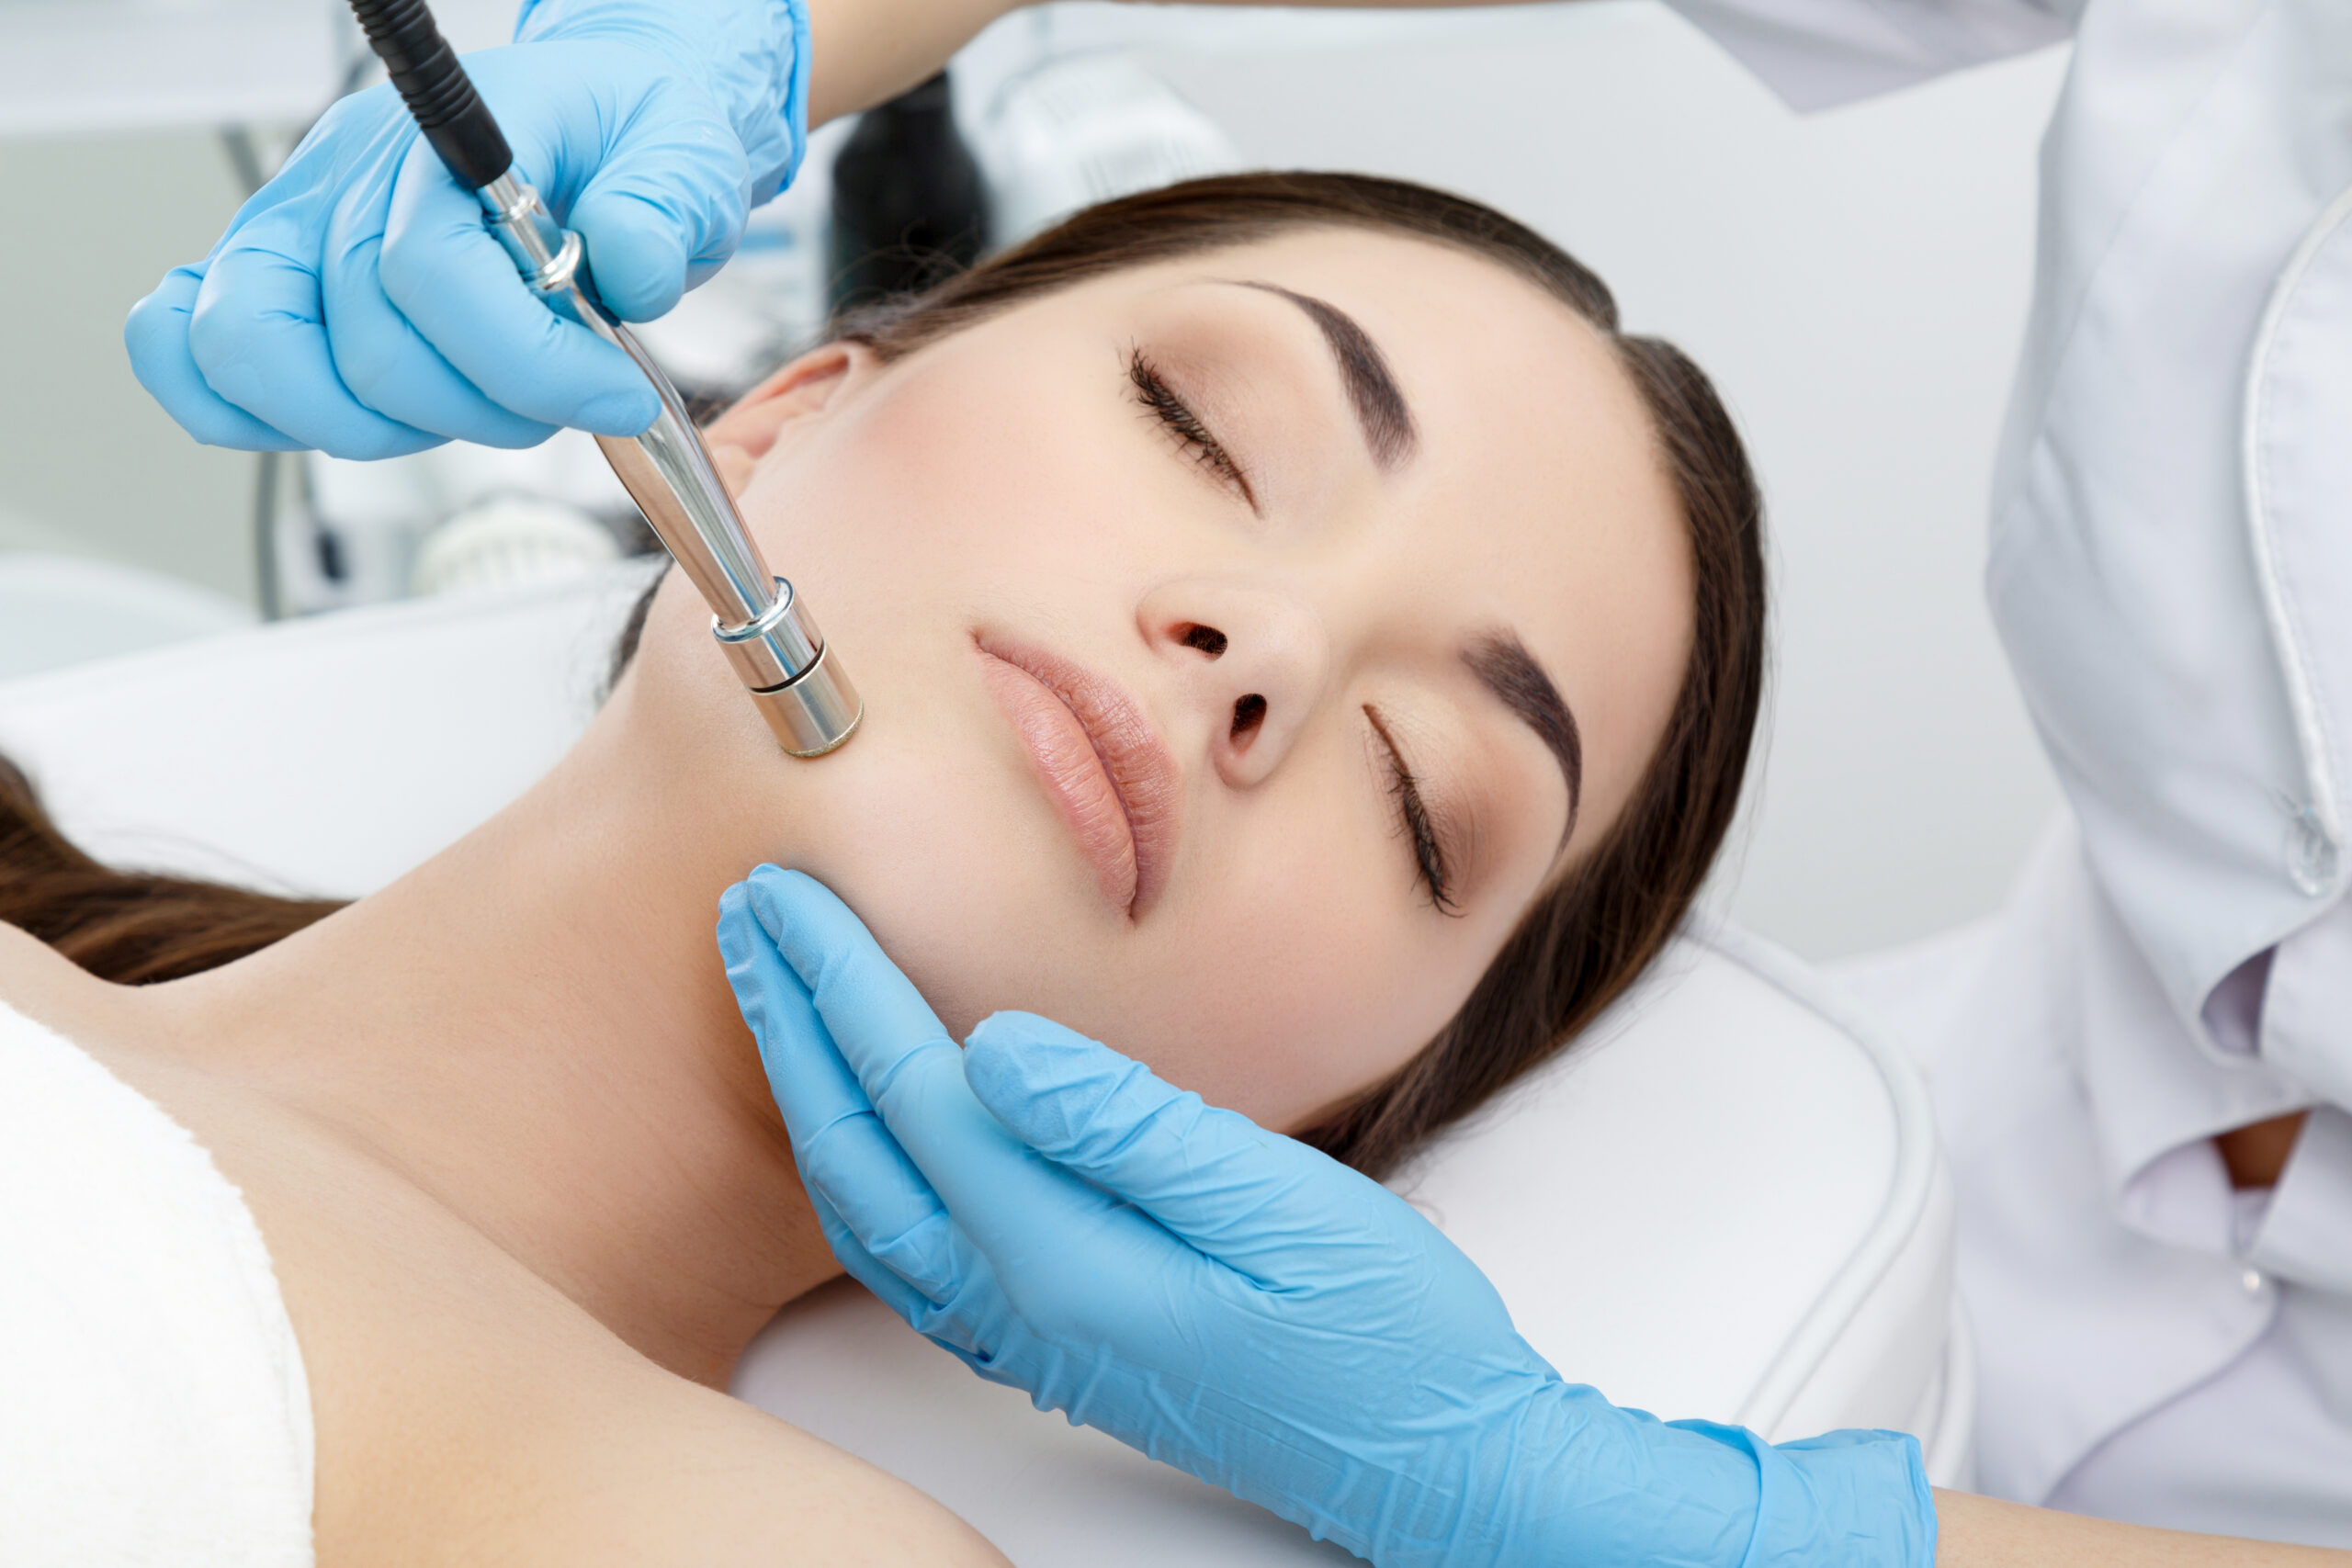 Microdermabrasion Treatments in Victoria